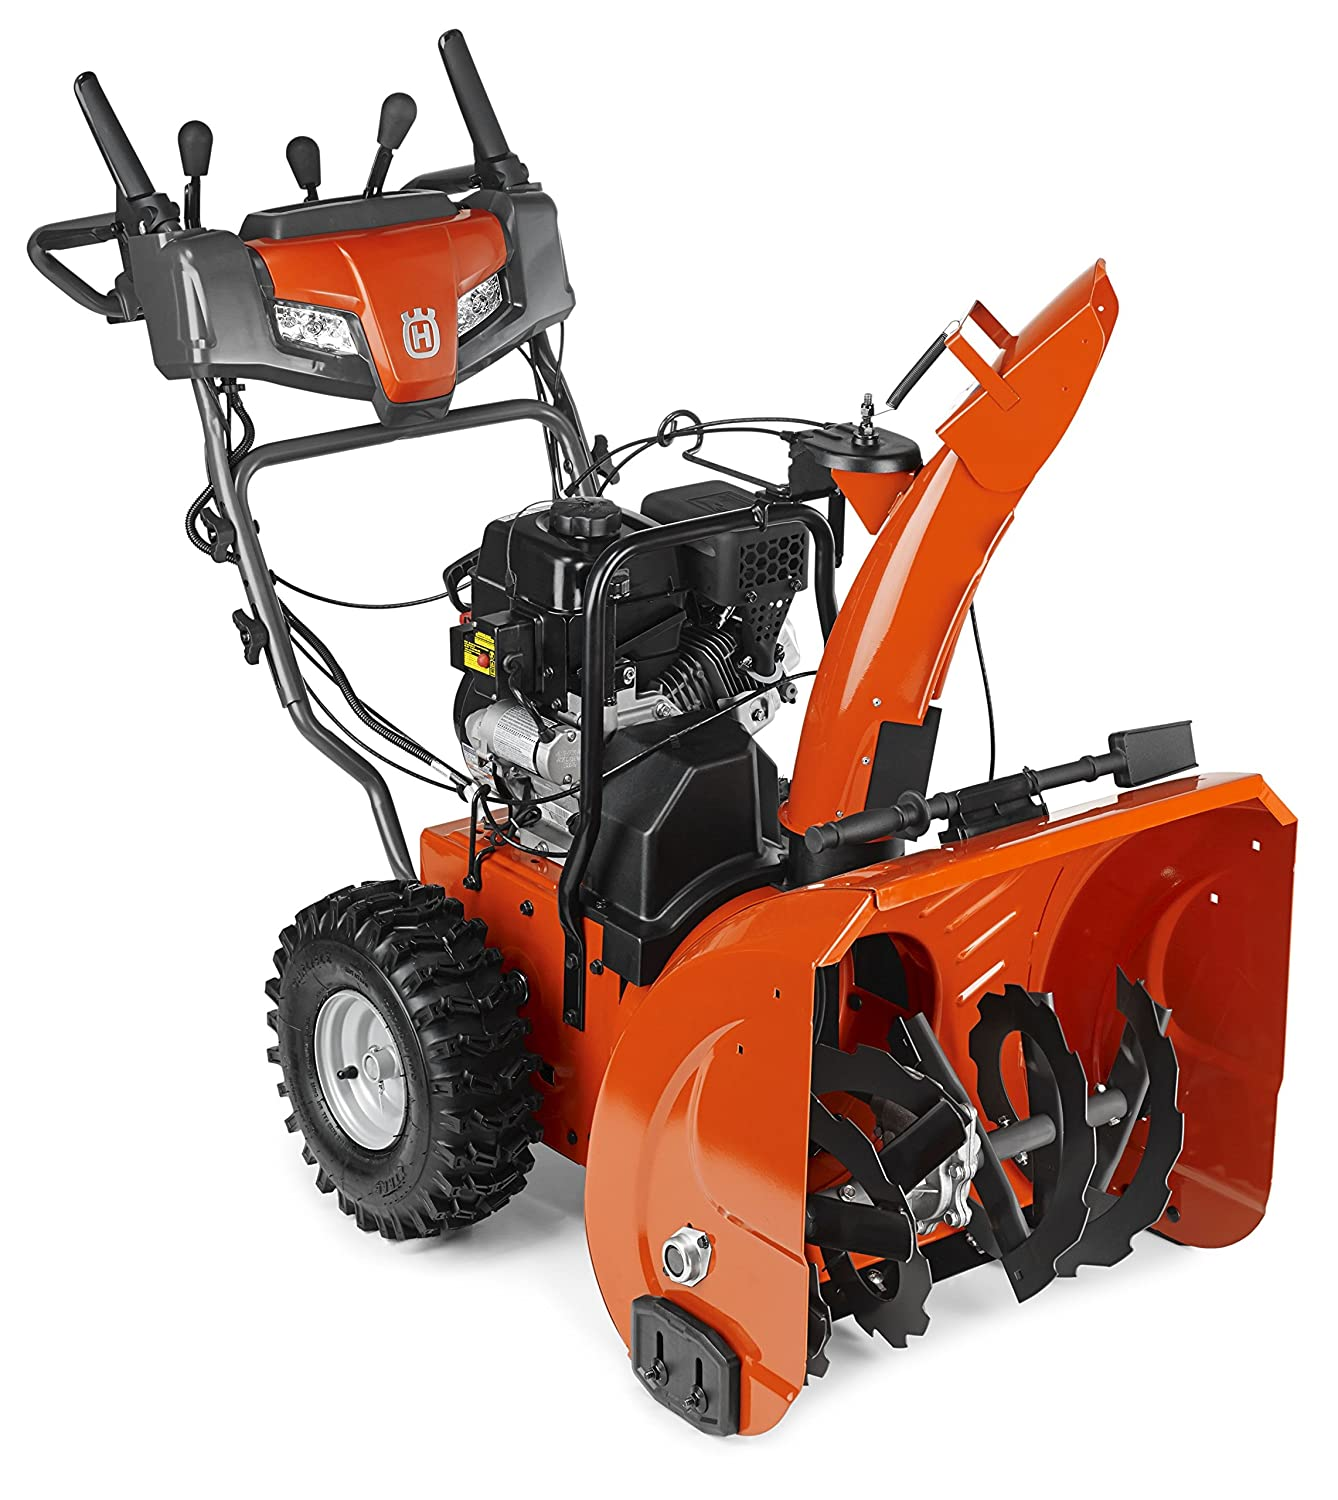 Husqvarna ST224 24-Inch Snow Blower Black Friday Deals